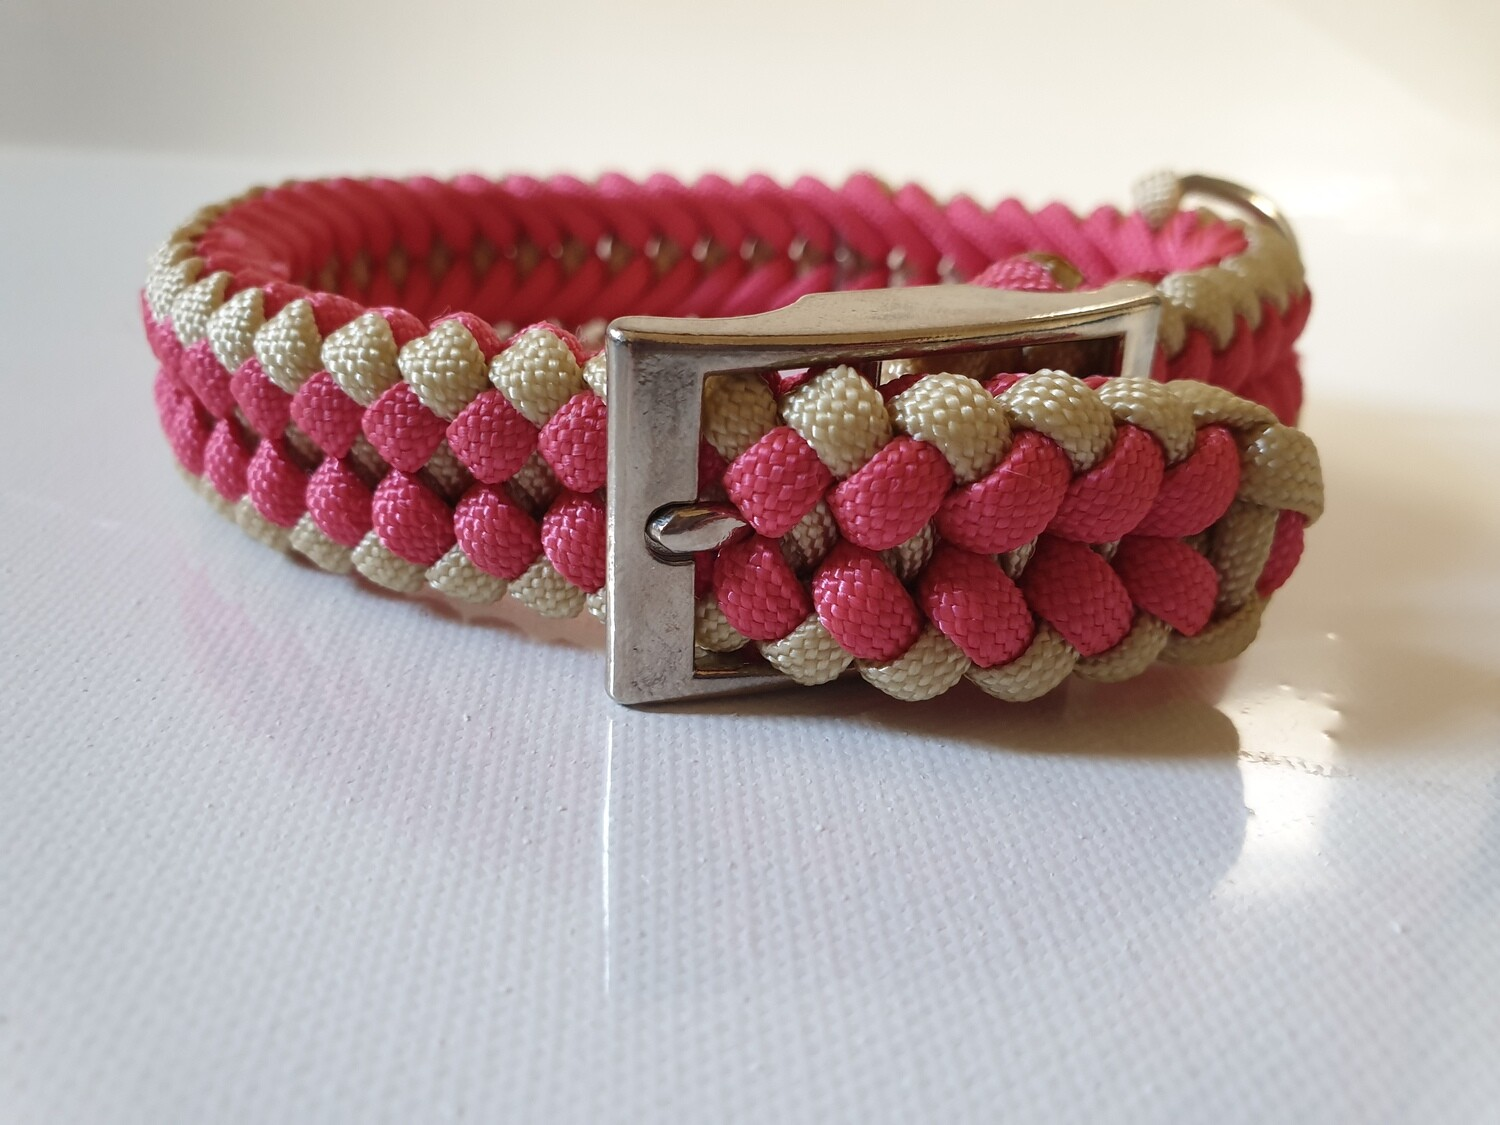 Sanctified Small Pink/Beige Dog Collar